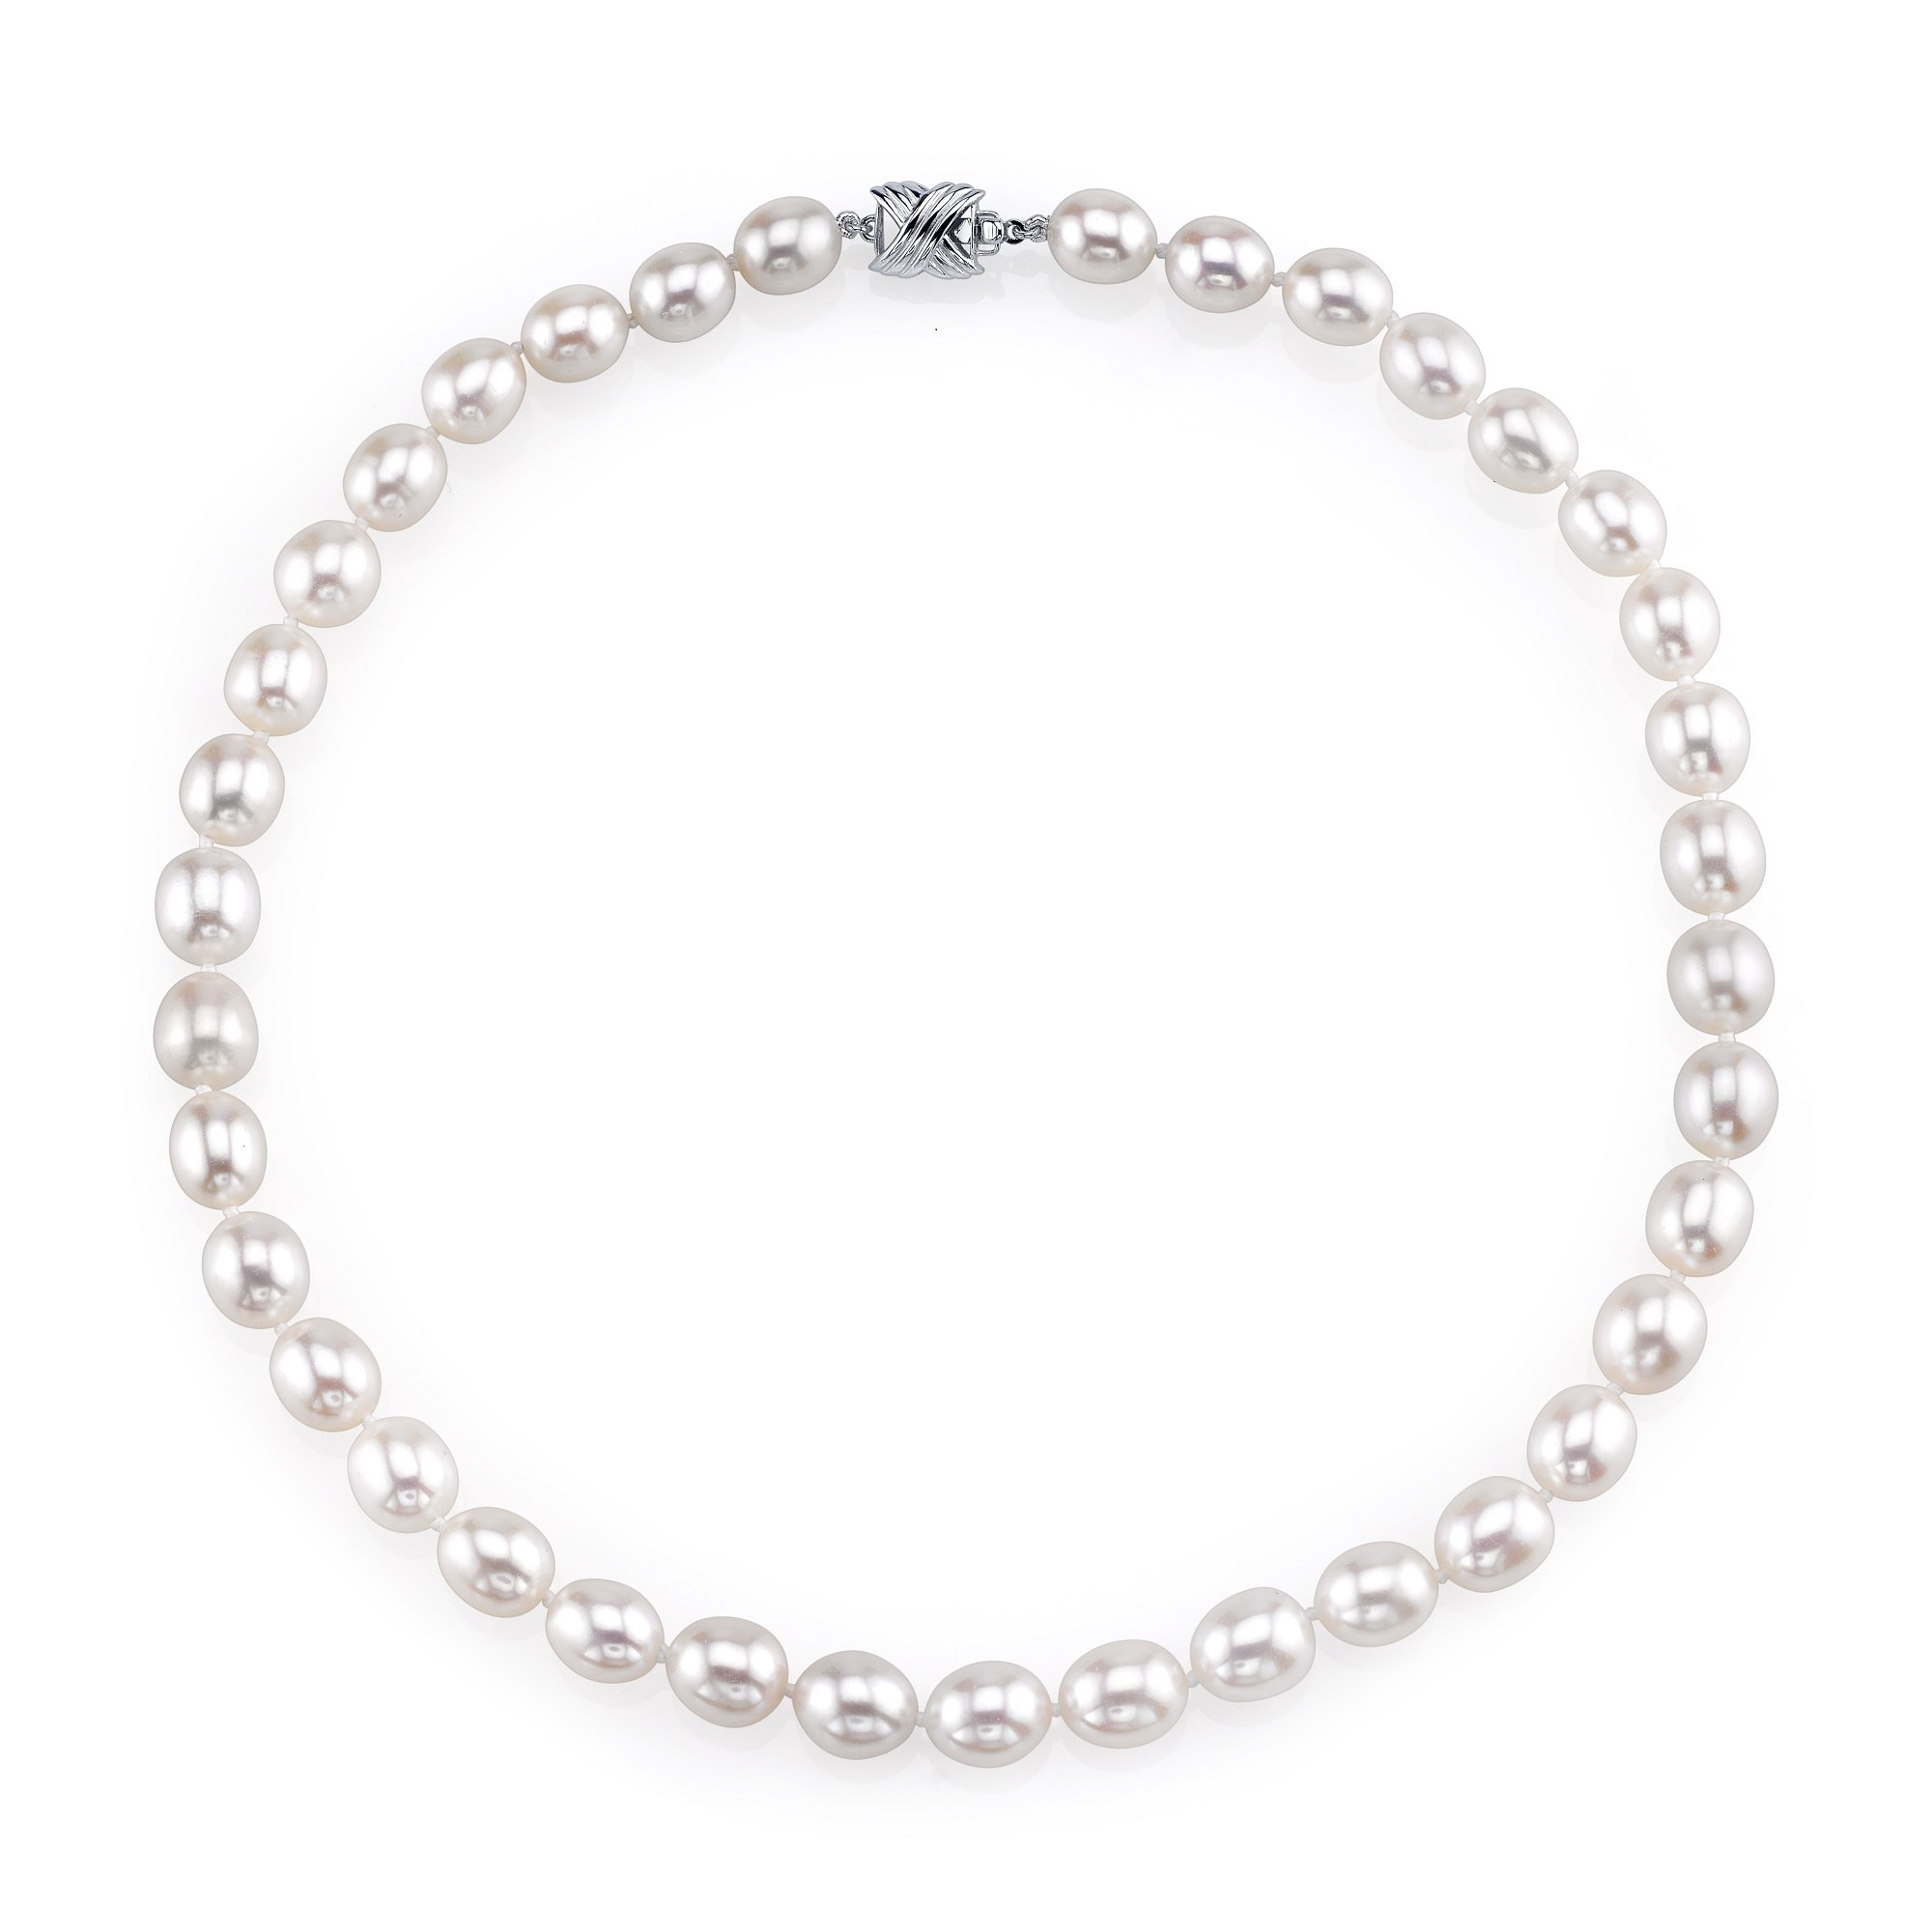 10-11mm Oval White Freshwater Cultured Pearl Necklace - AAA Quality , 18'' Length